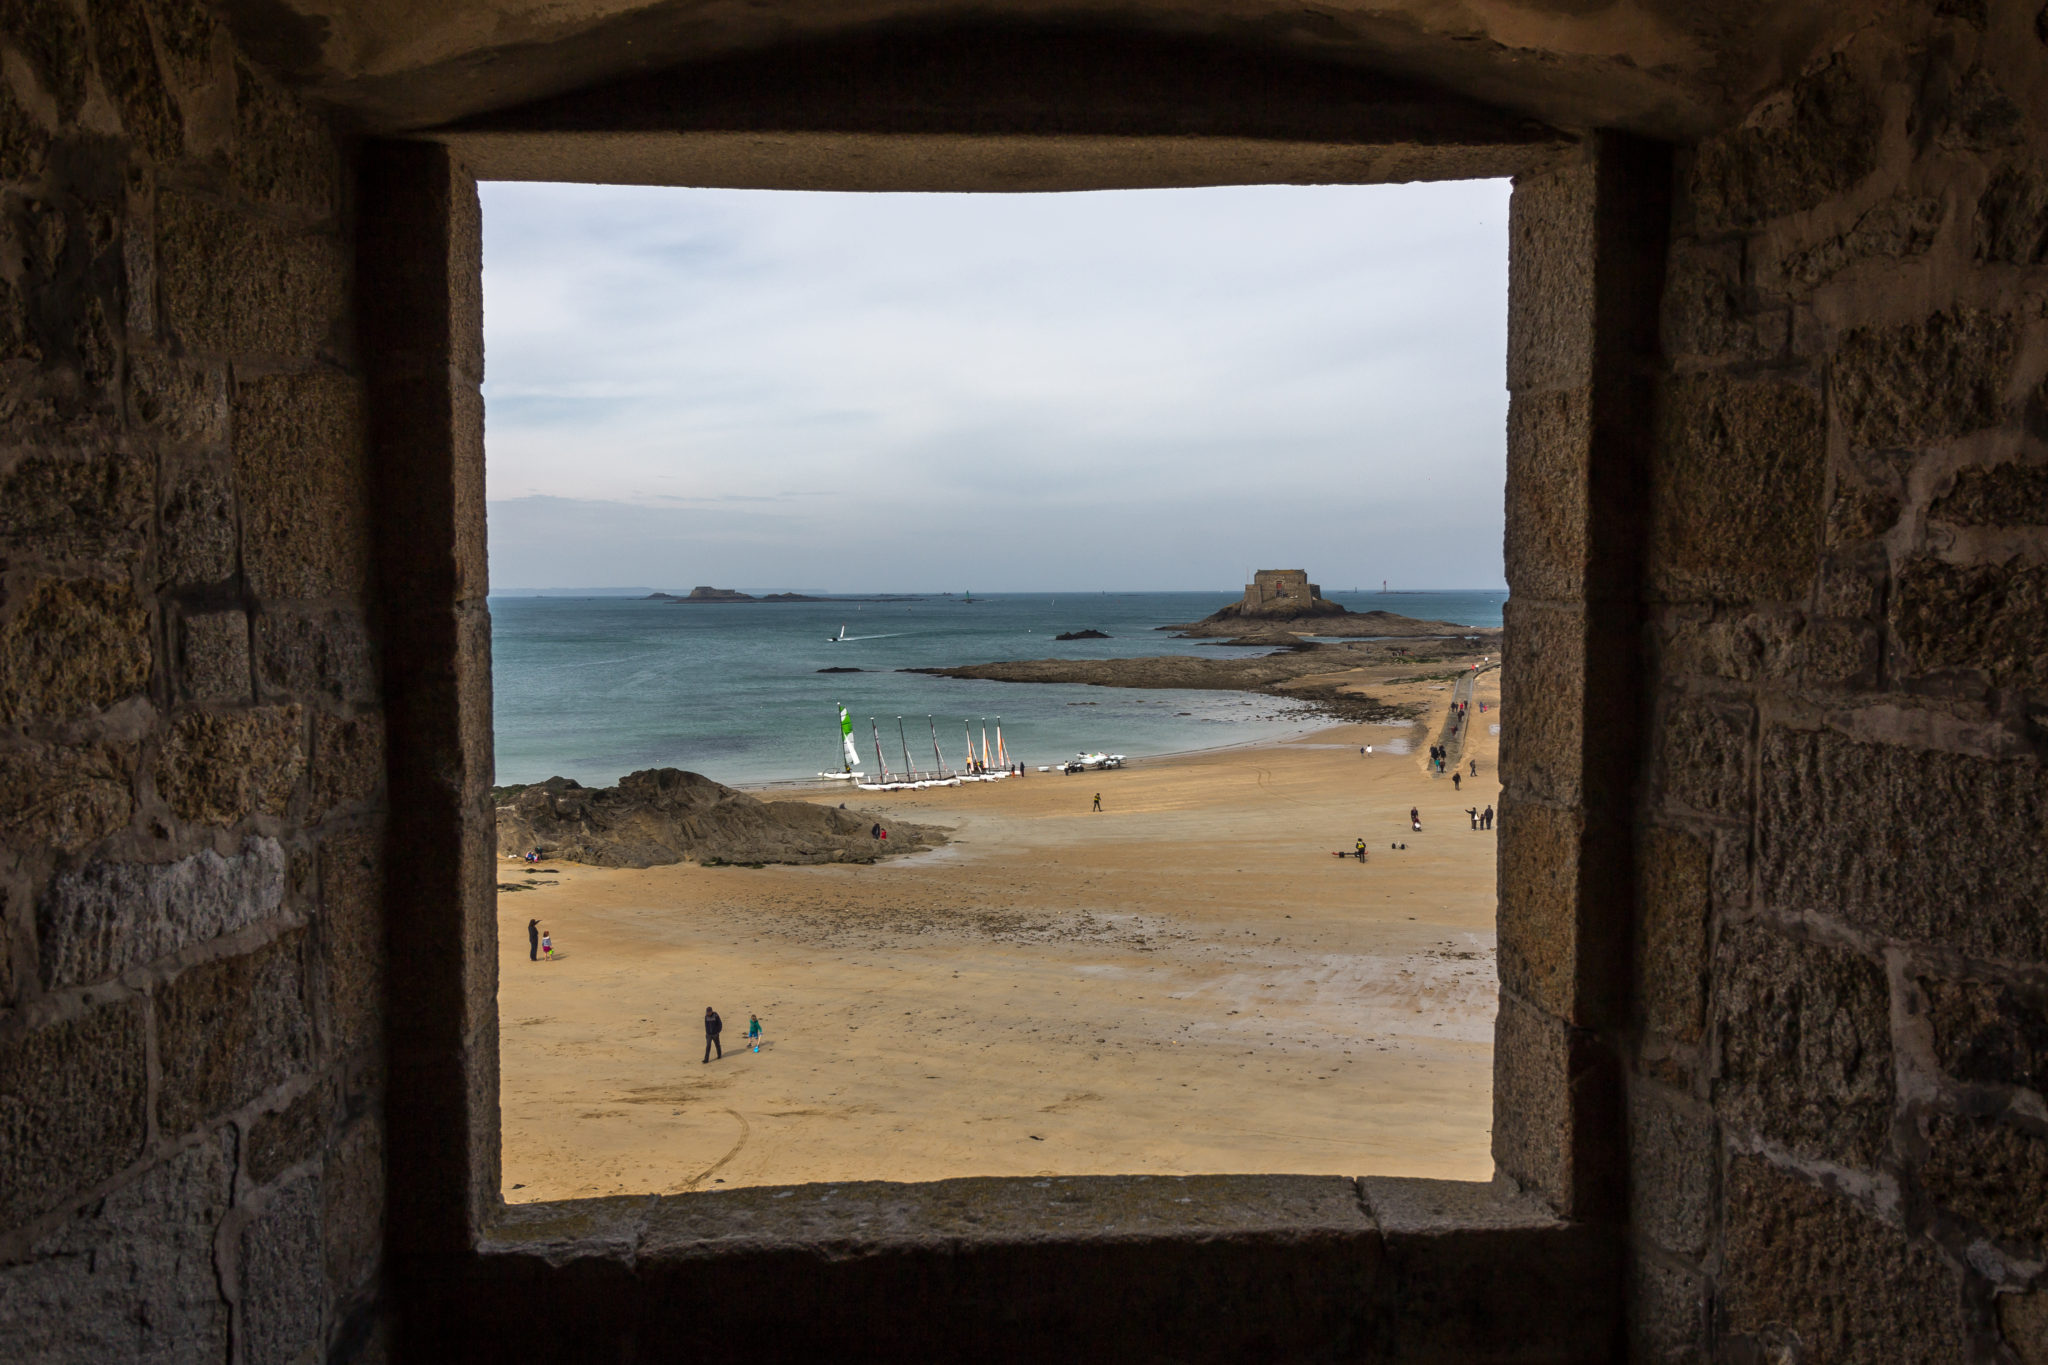 Photo of a window where we see the sea, sailing ships and rock